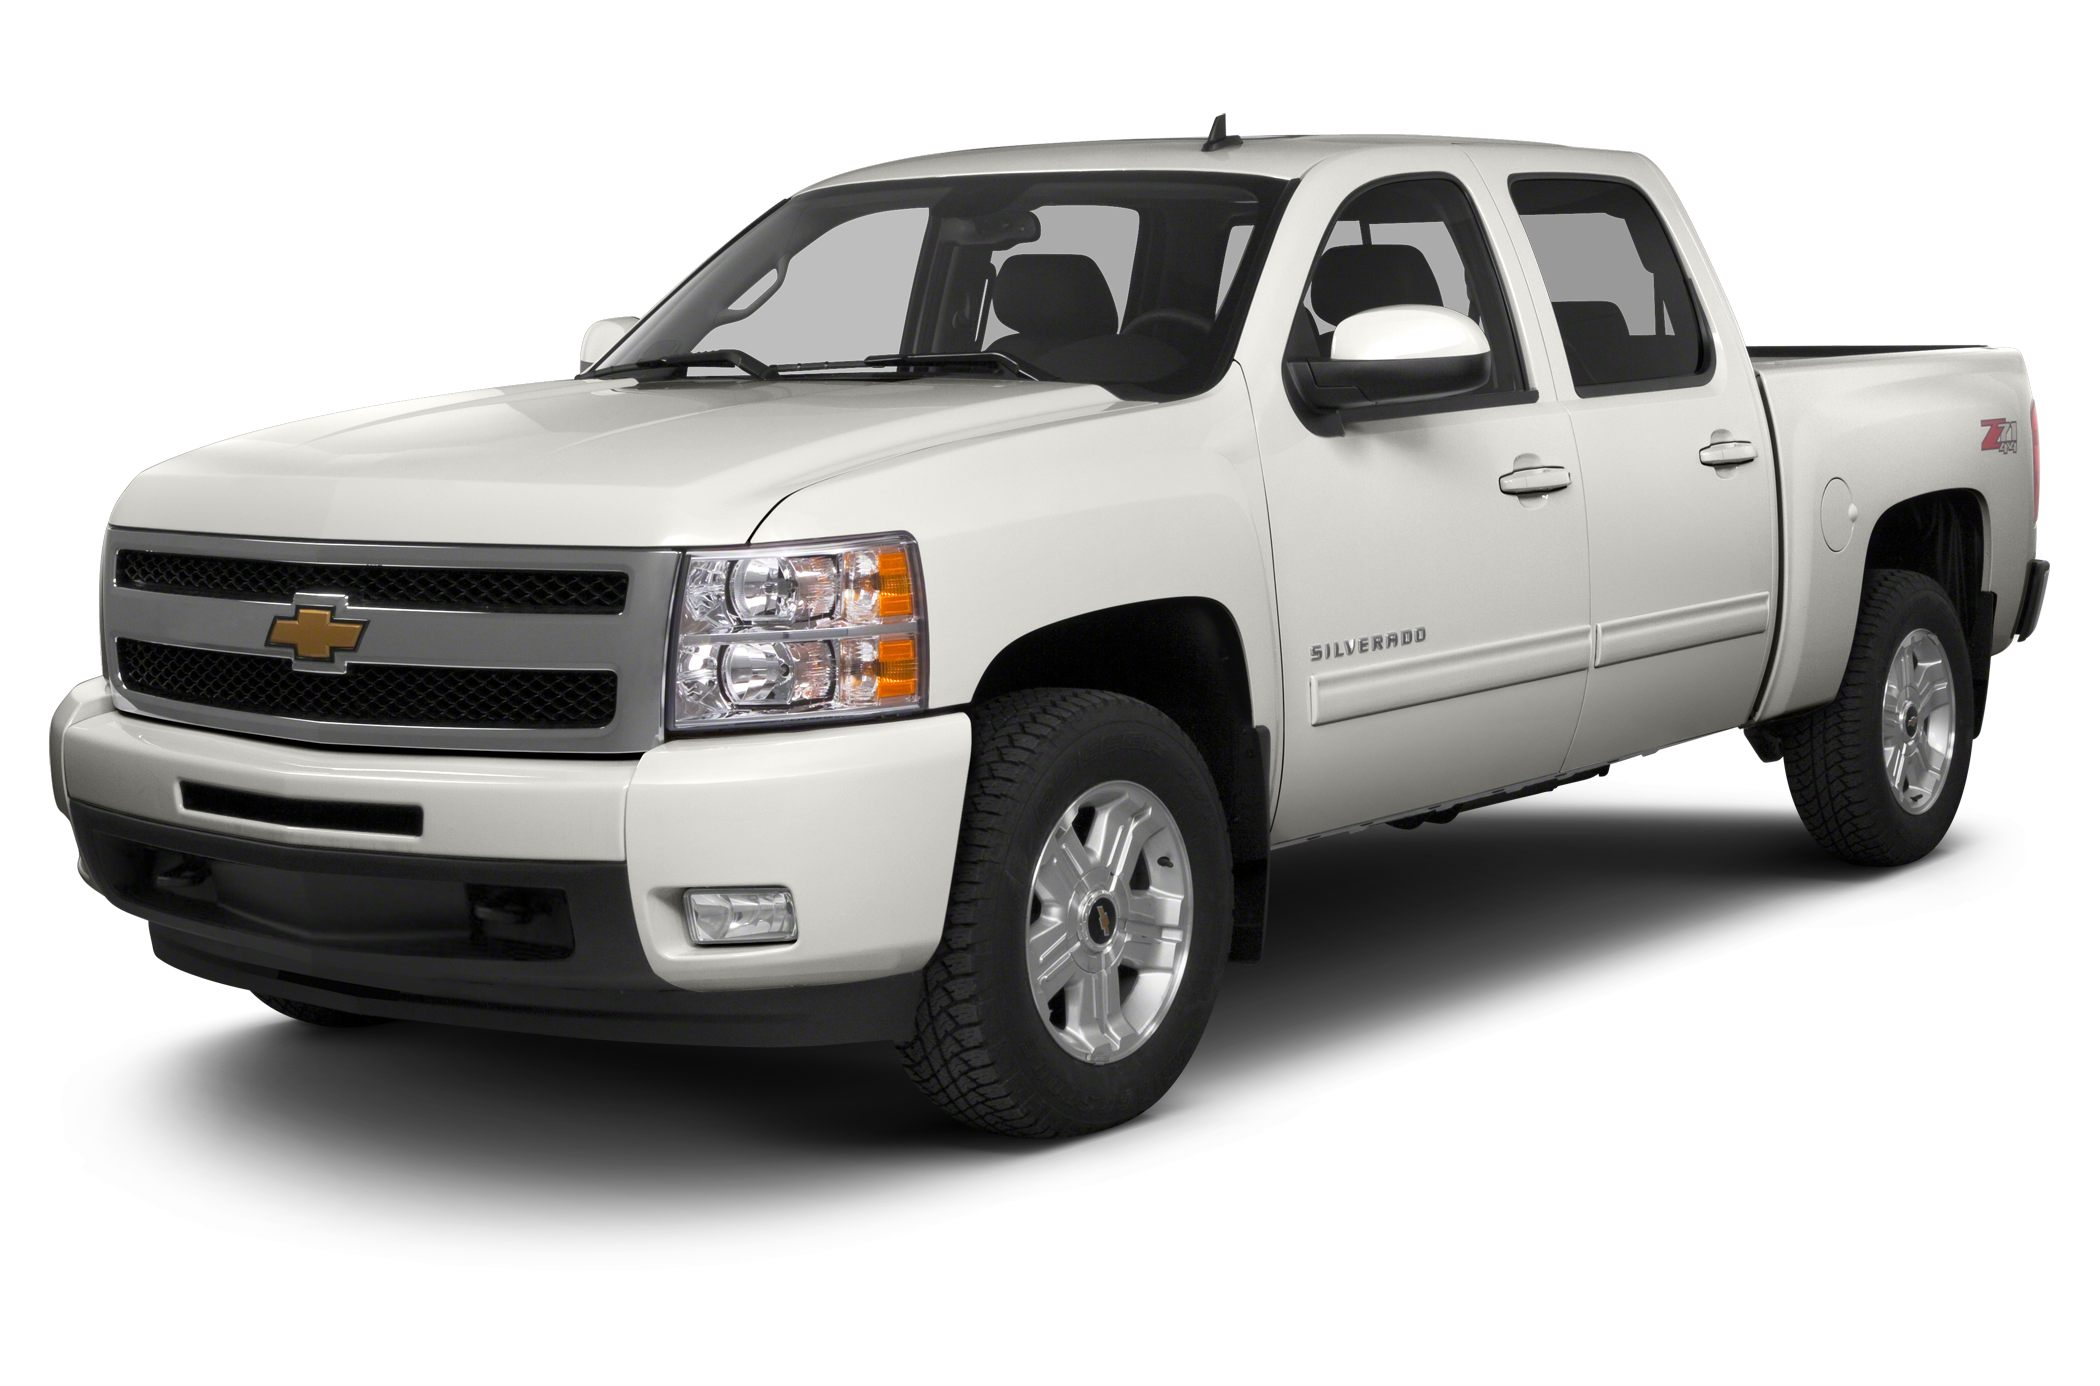 2013 Chevrolet Silverado 1500 Work Truck 4x2 Crew Cab 5 75 Ft Box 143 5 In Wb Specs And Prices